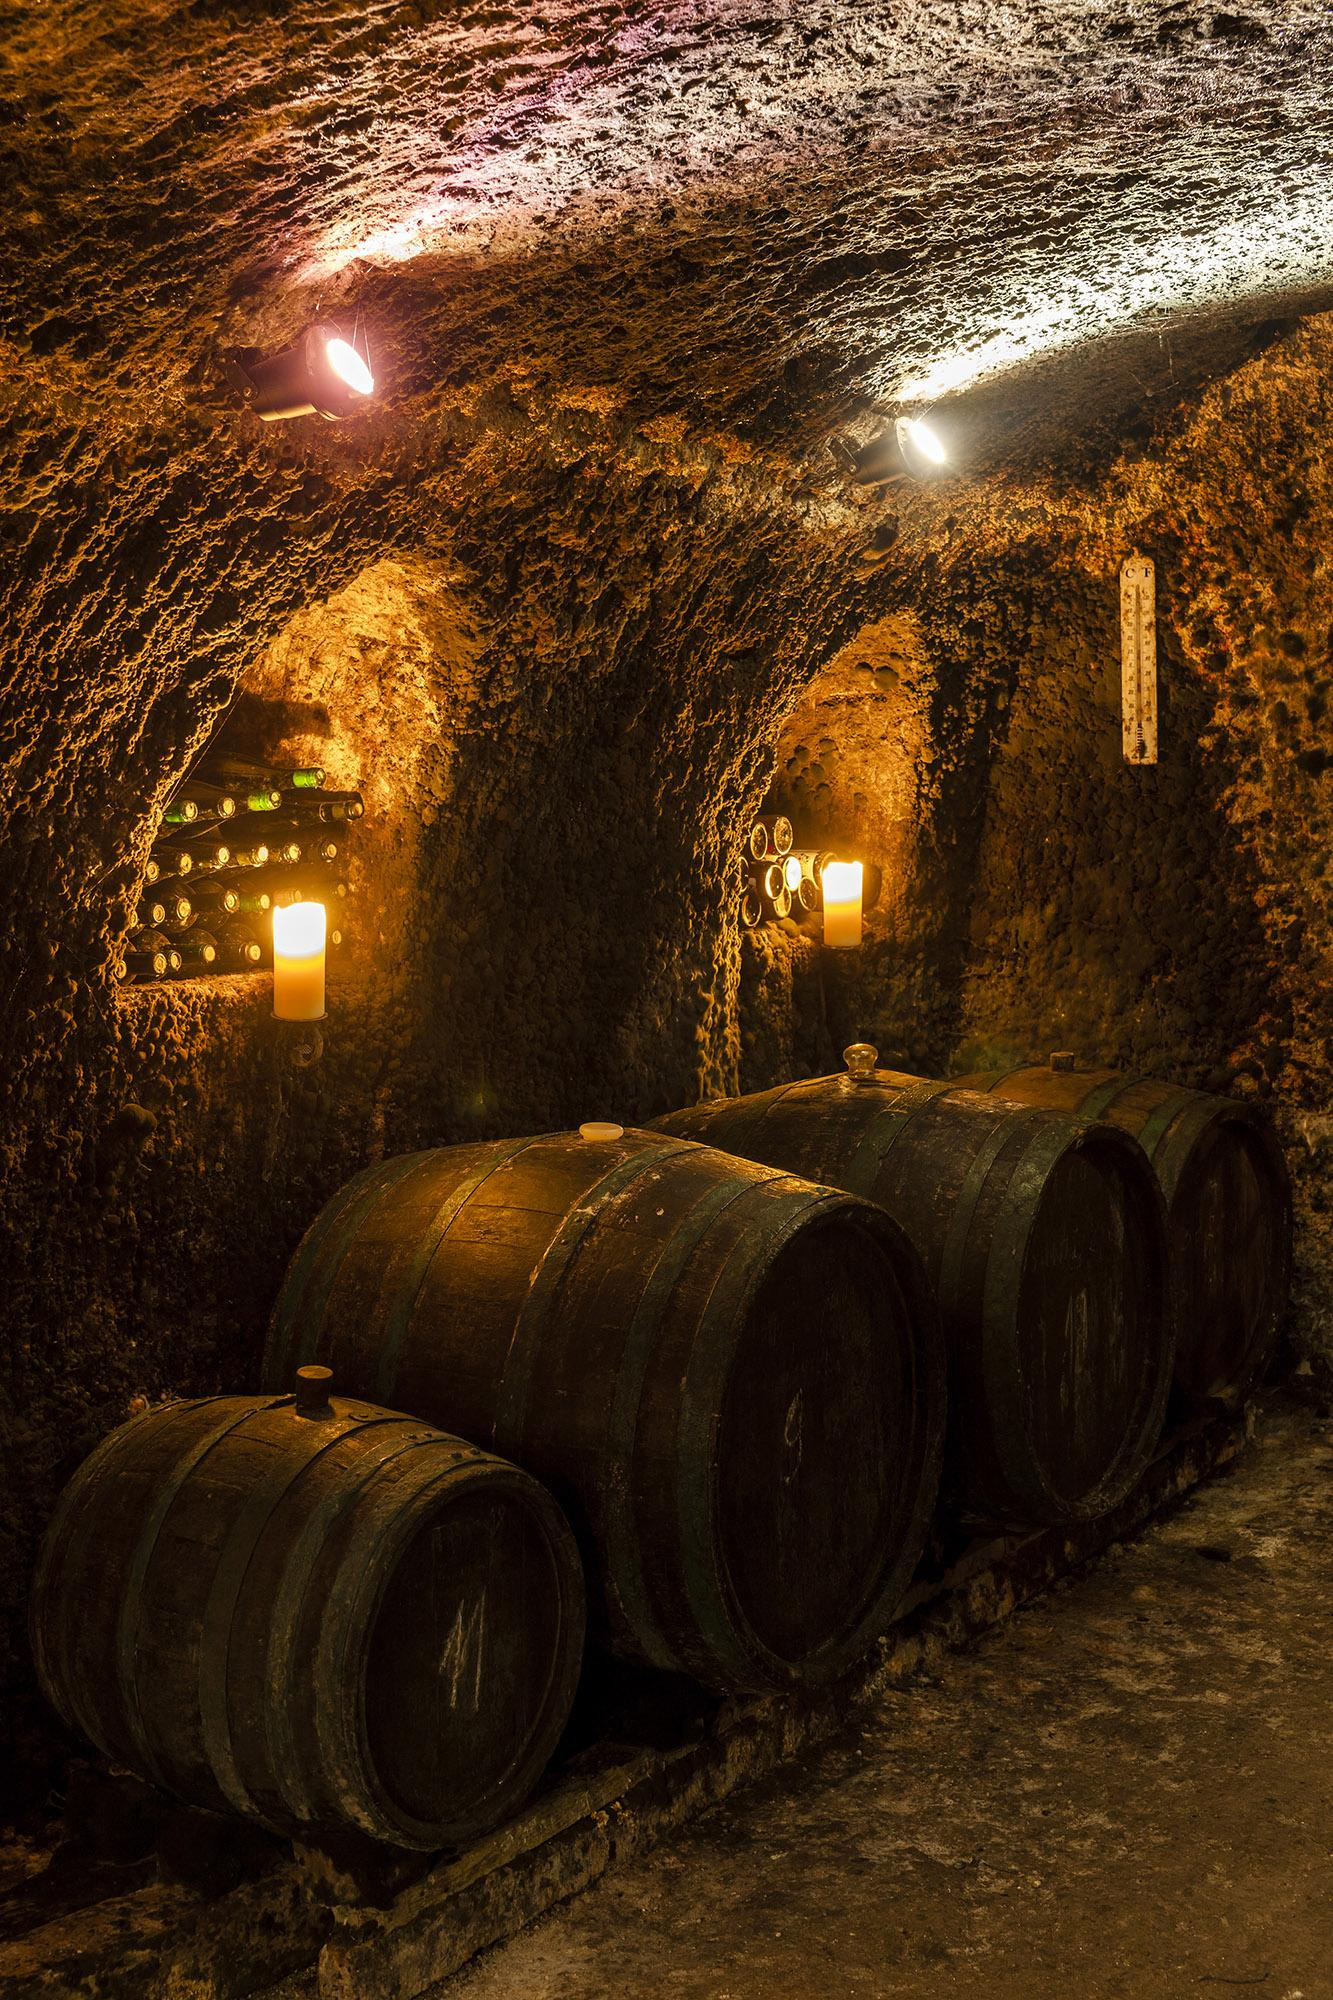 The wine cellar in Tokaj is indicative of the region, which has a unique geological position, climatic conditions, and biodiversity. - © Richard Semik